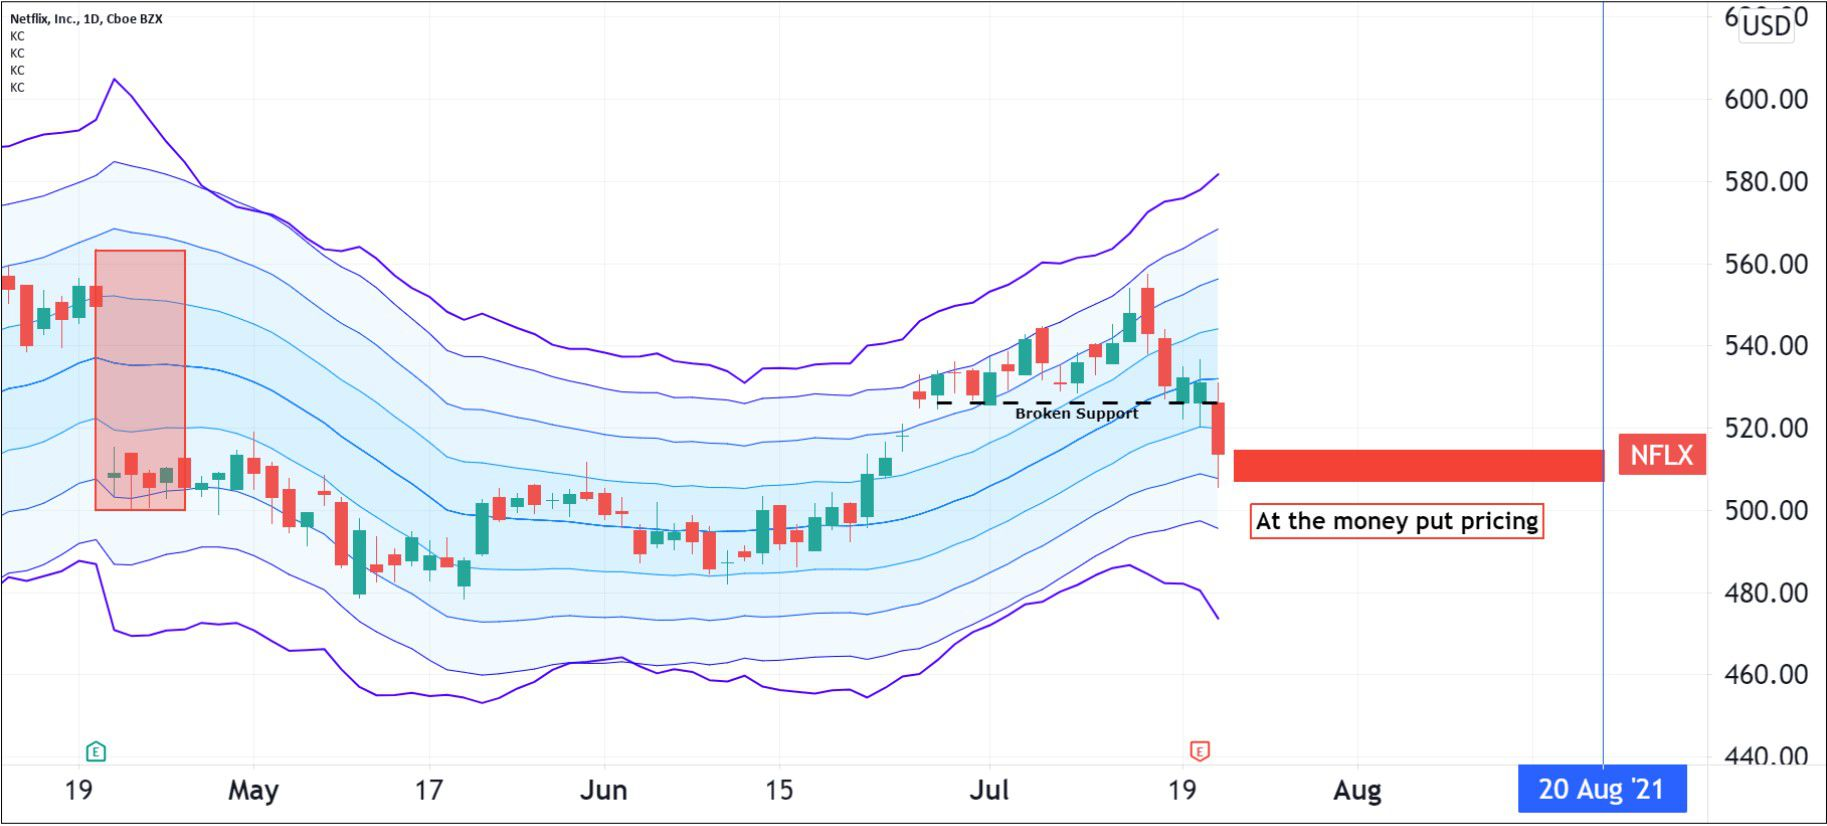 Option Pricing for Netflix, Inc. (NFLX)